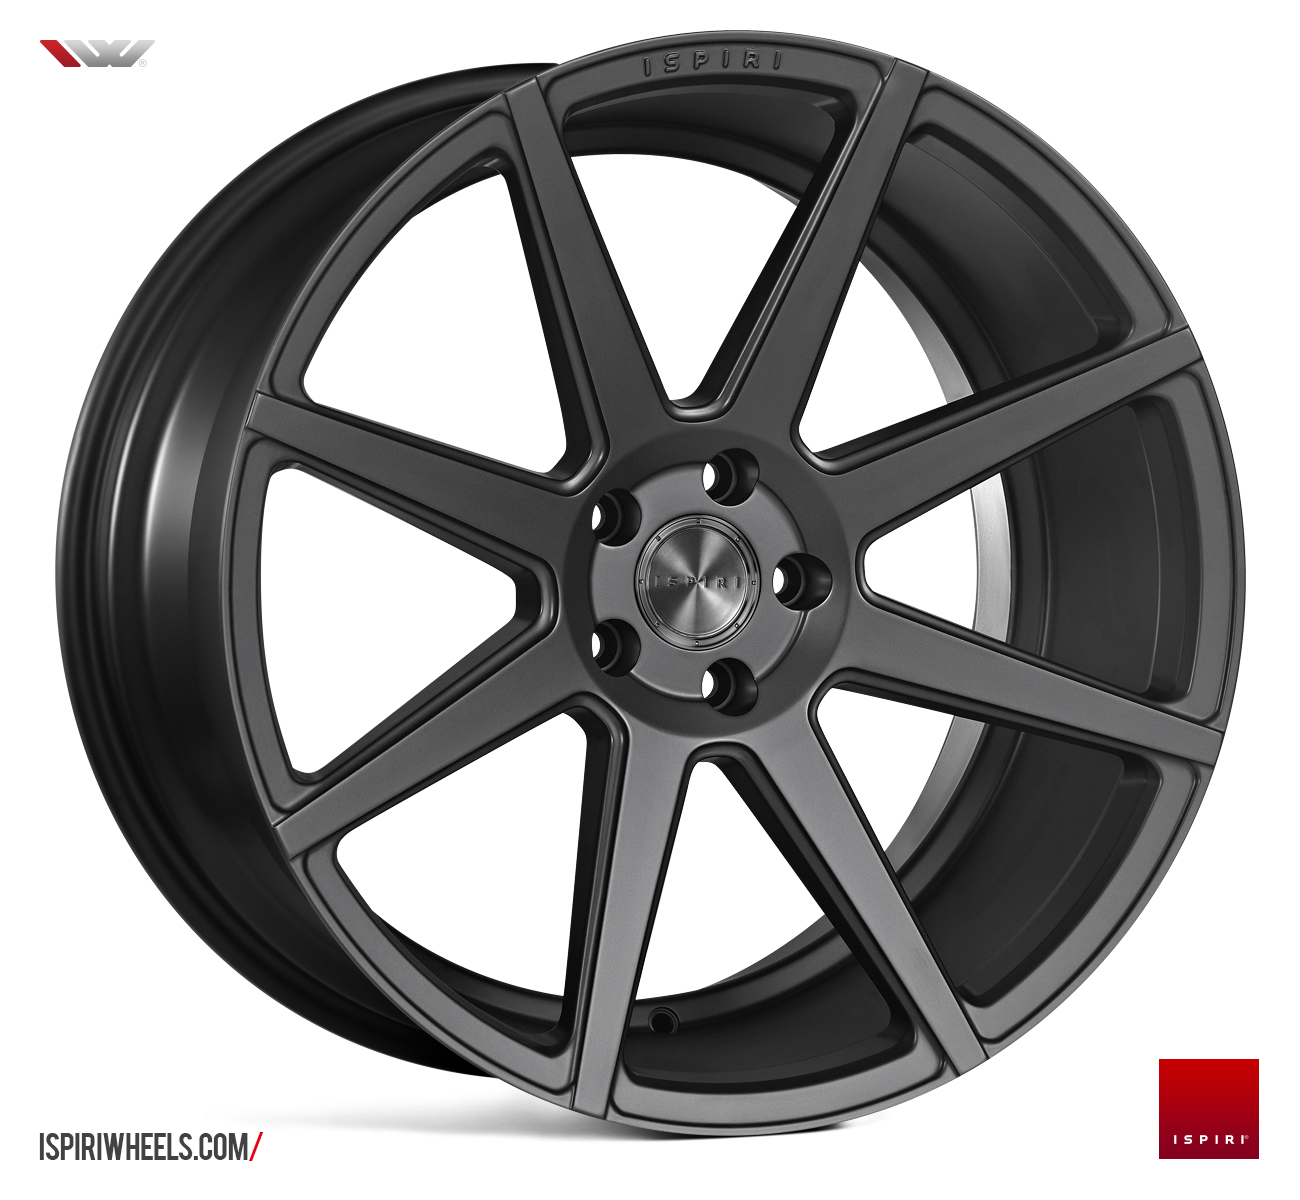 "NEW 20"" ISPIRI ISR8 ALLOY WHEELS IN CARBON GRAPHITE WITH WIDER 10.5"" REARS"